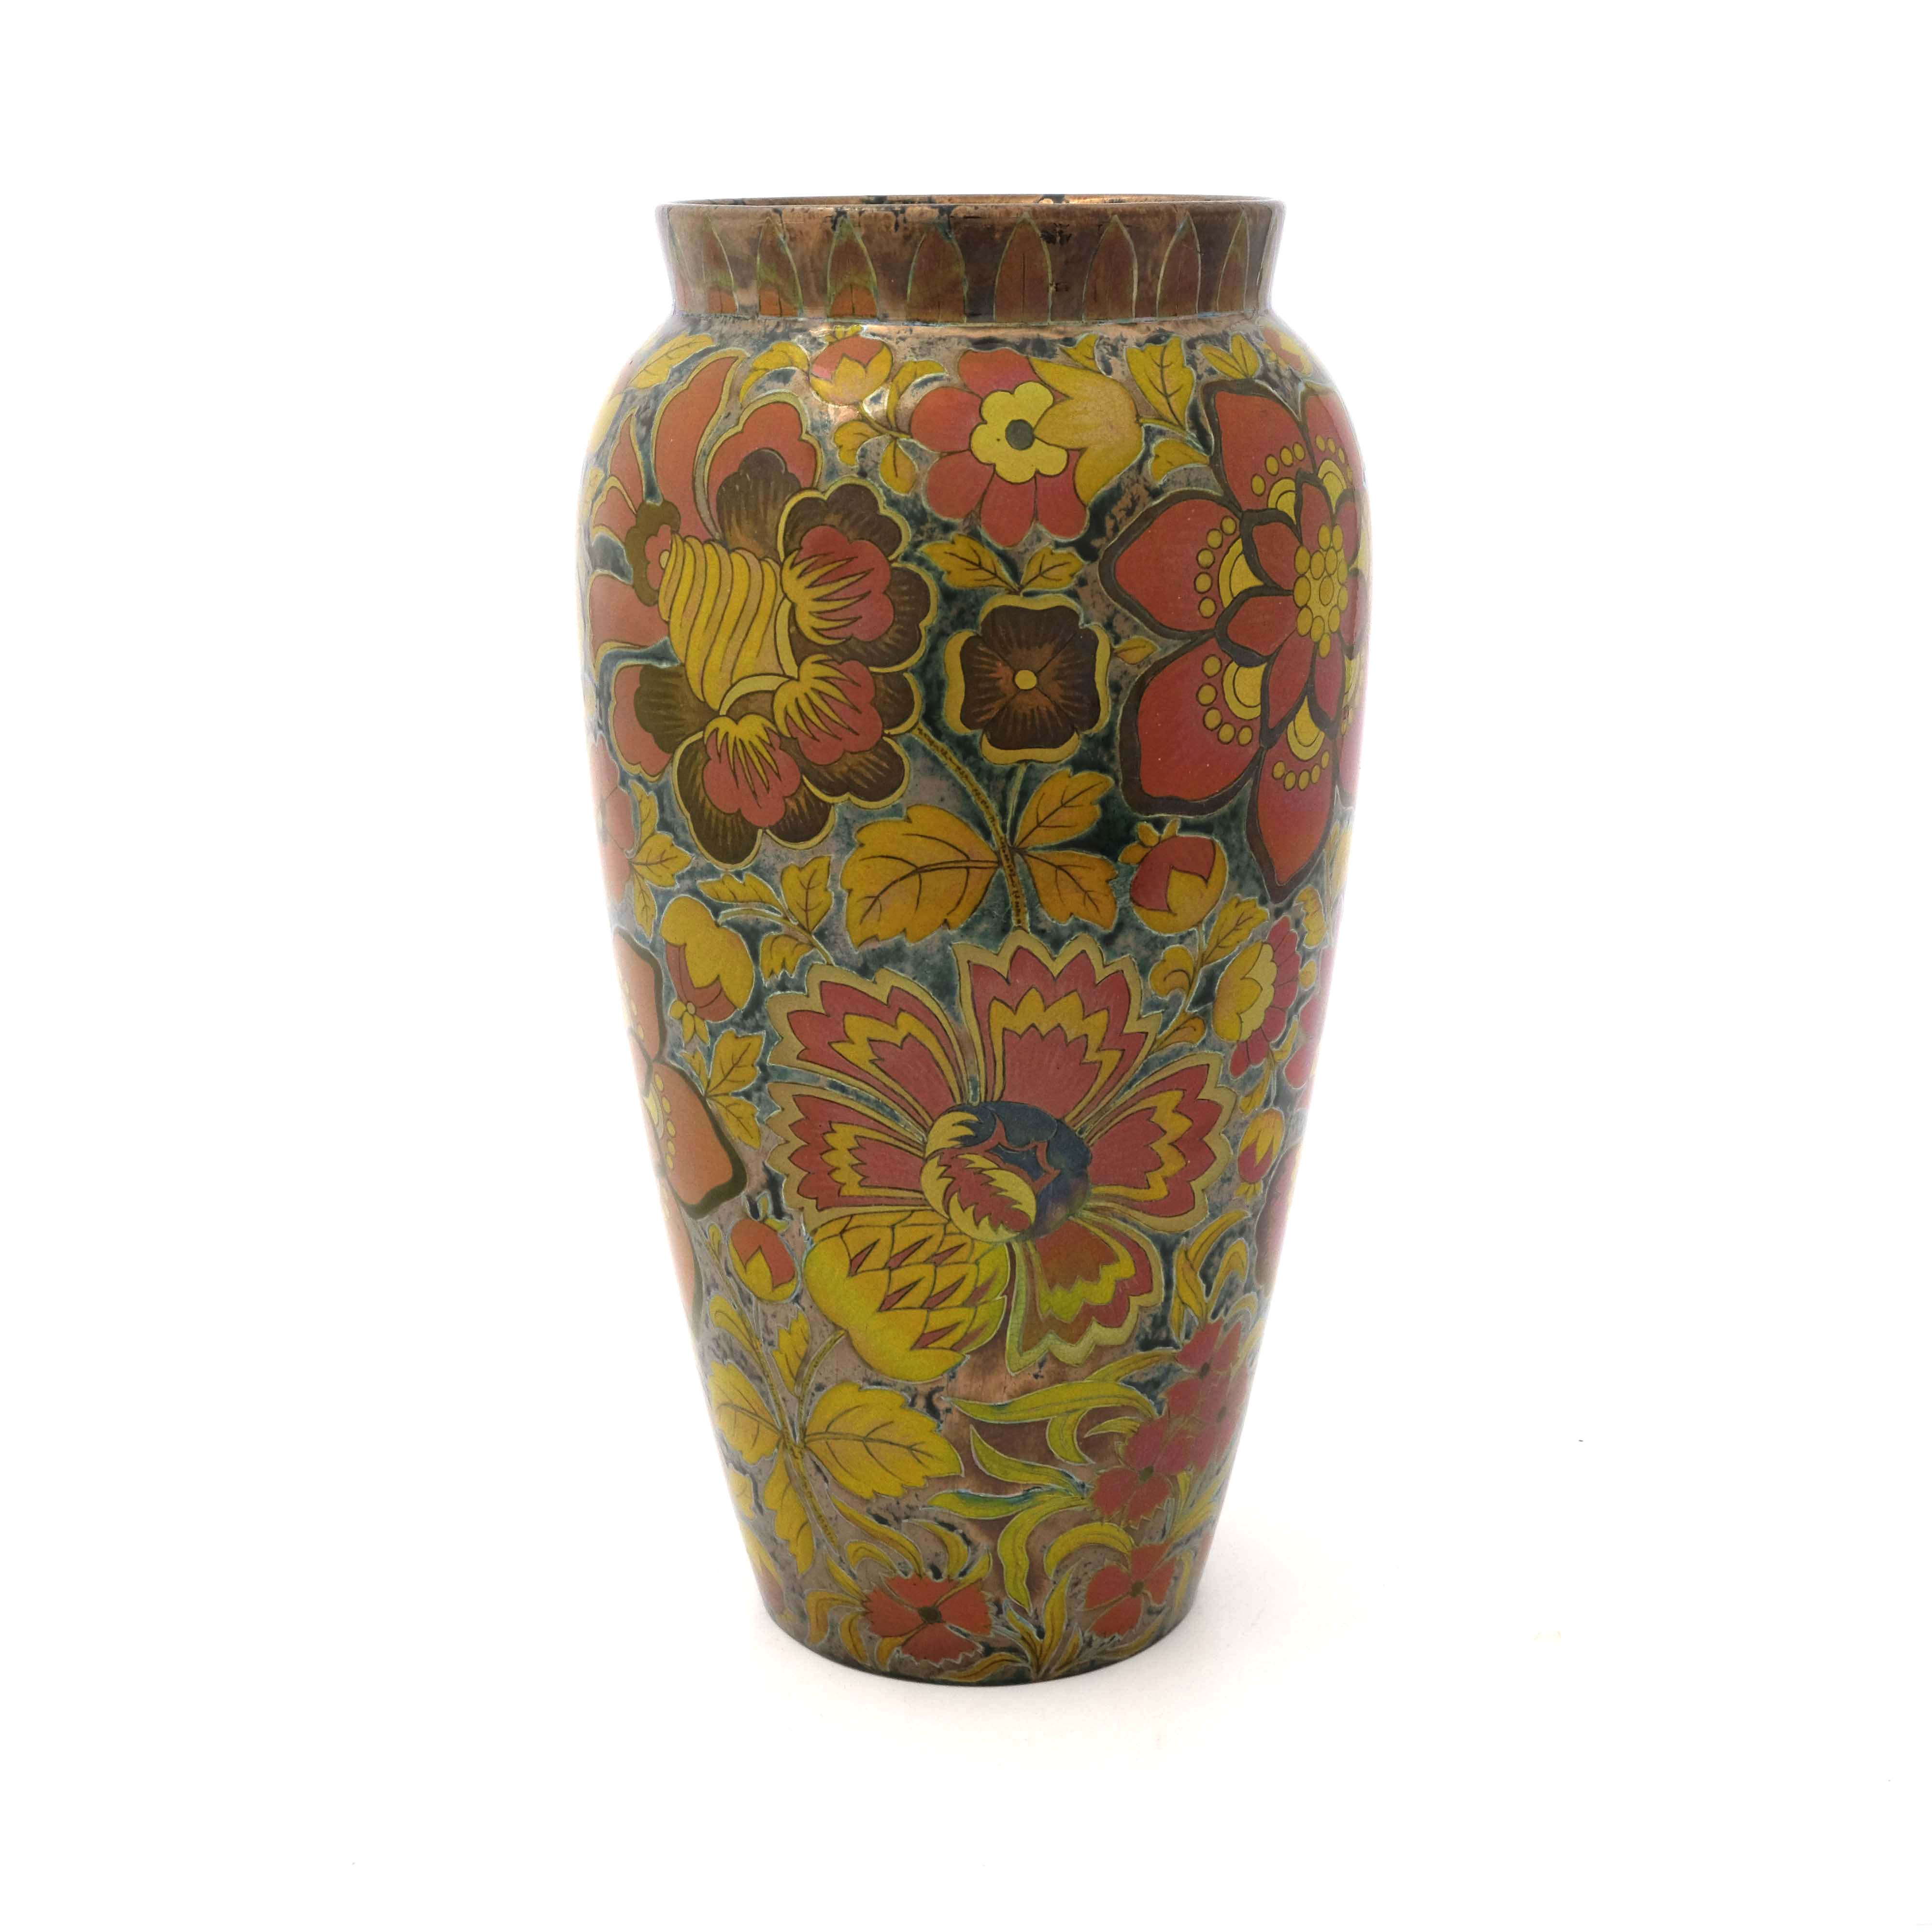 Zsolnay, Pecs, a lustre vase - Image 2 of 6